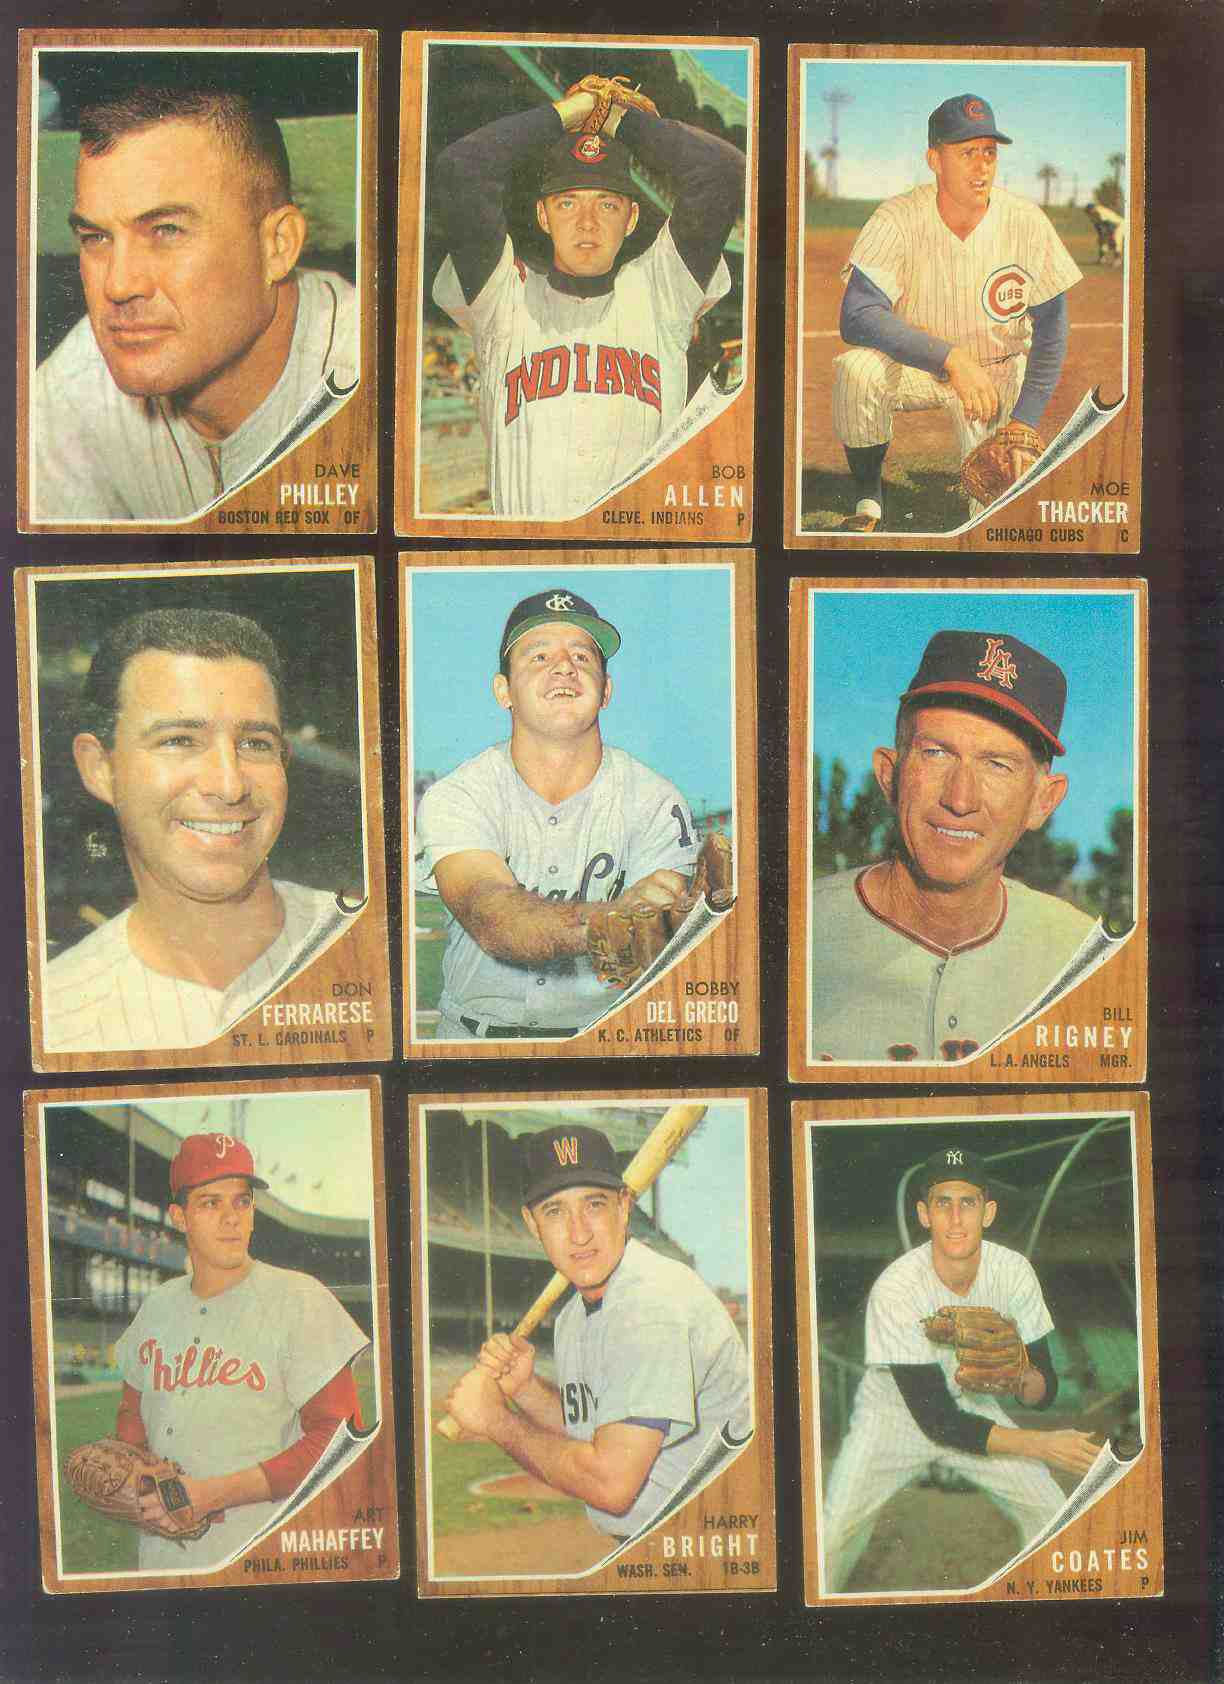 1962 Topps #551 Harry Bright [#c] HIGH #.(Senators) Baseball cards value